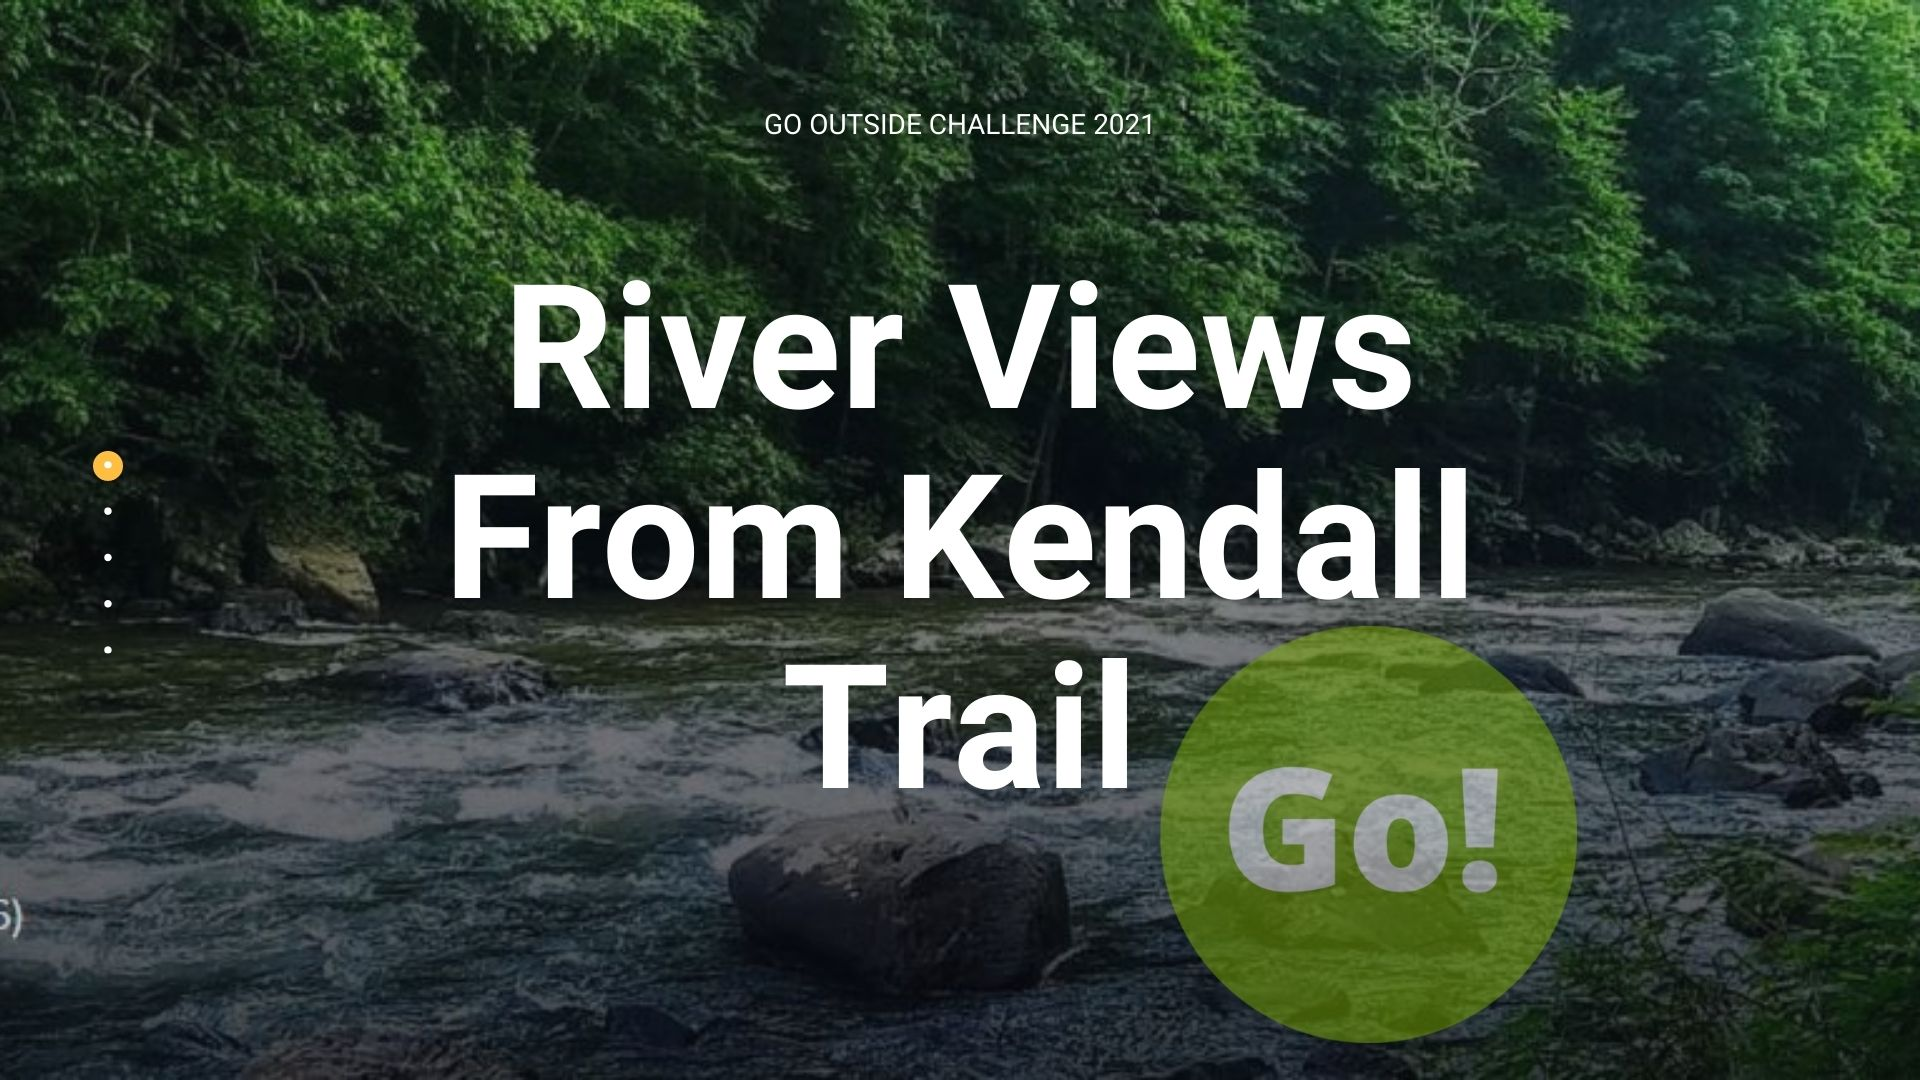 Love For Kendall Trail – +3 Prize Points